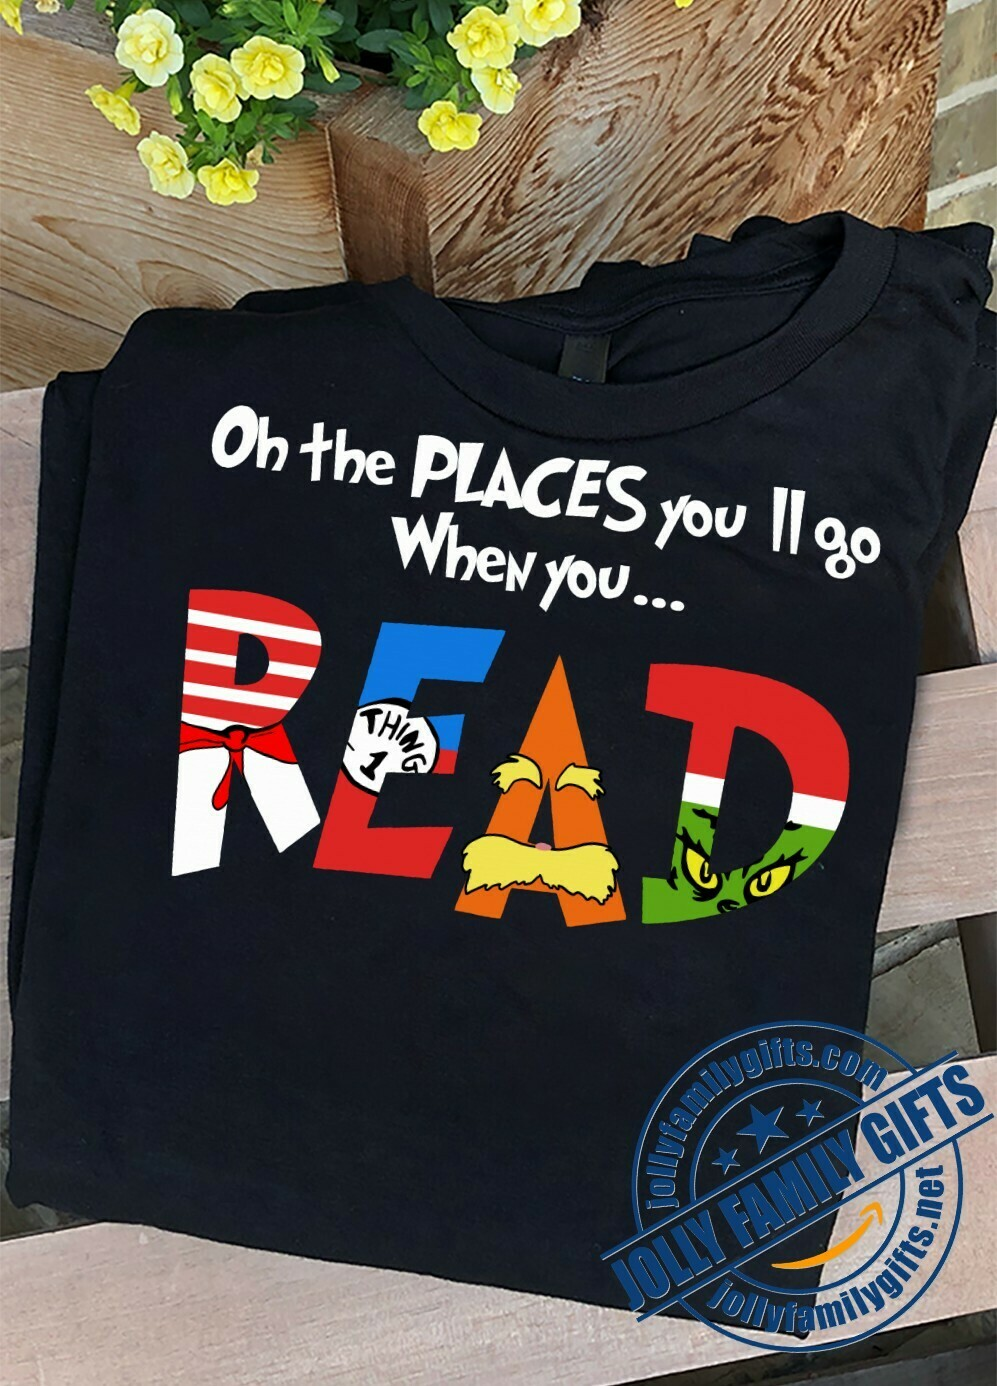 Doctor Seuss Oh the PLACES you'll go when you READ Geek Video Games Parody  Unisex T-Shirt Hoodie Sweatshirt Sweater Plus Size for Ladies Women Men Kids Youth Gifts Tee Jolly Family Gifts